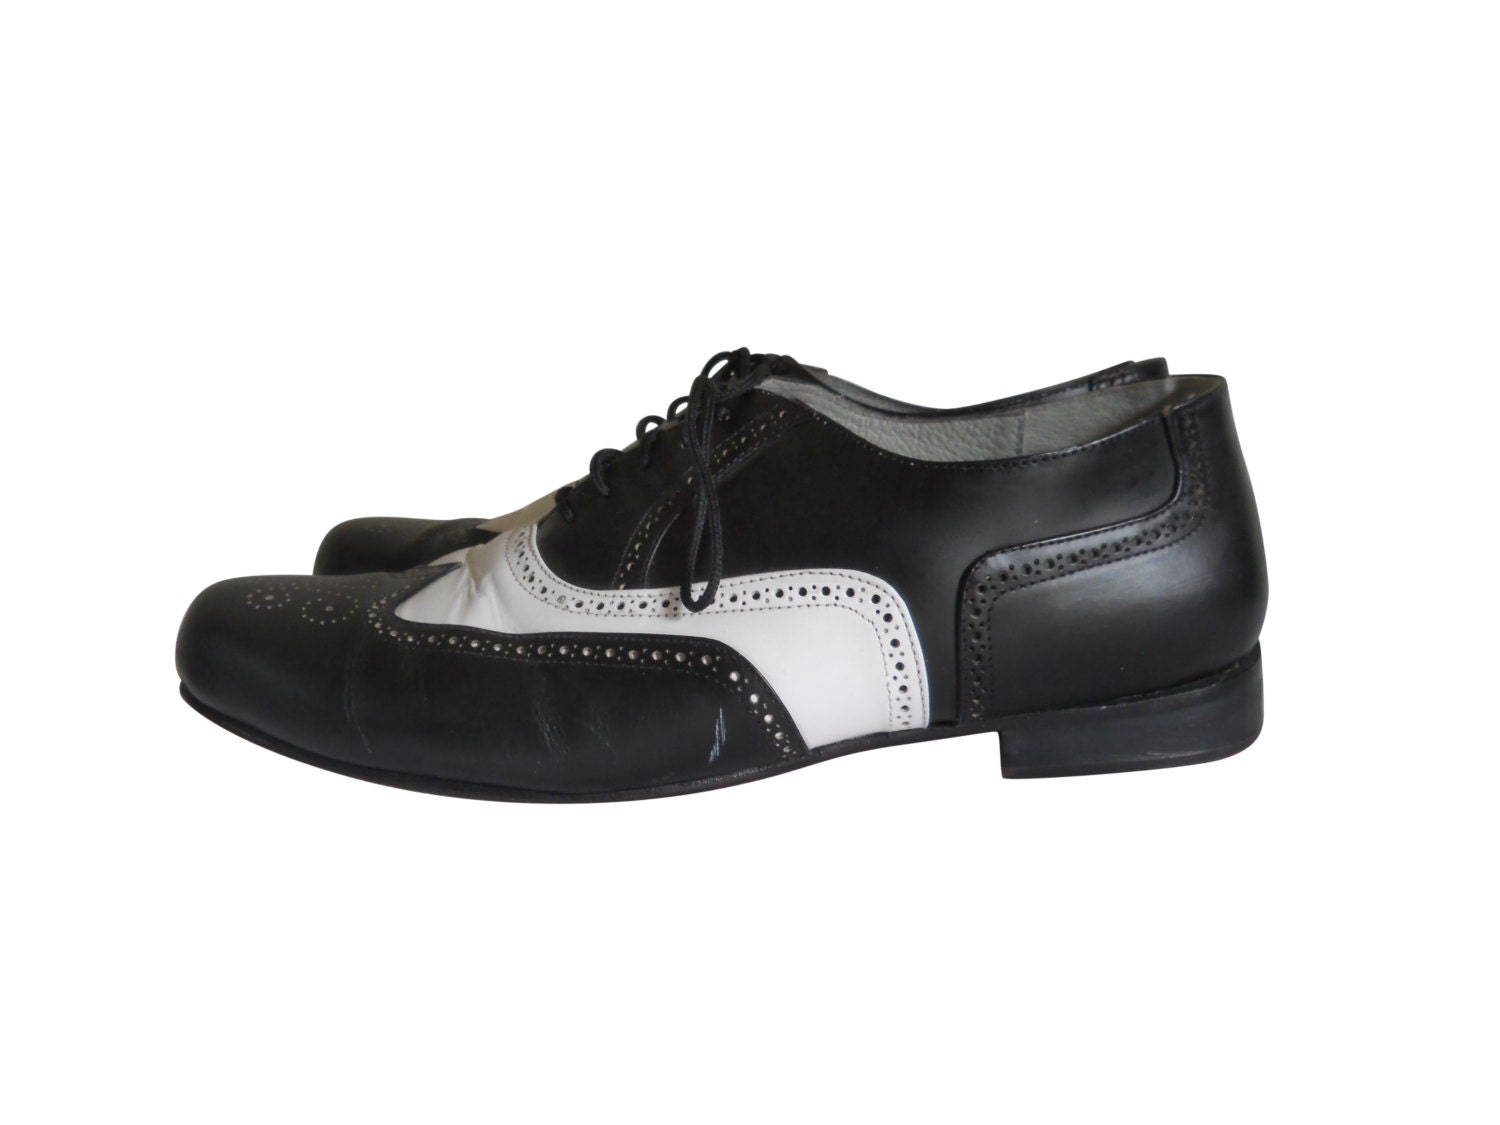 spectator shoe black and white shoe wingtip shoe